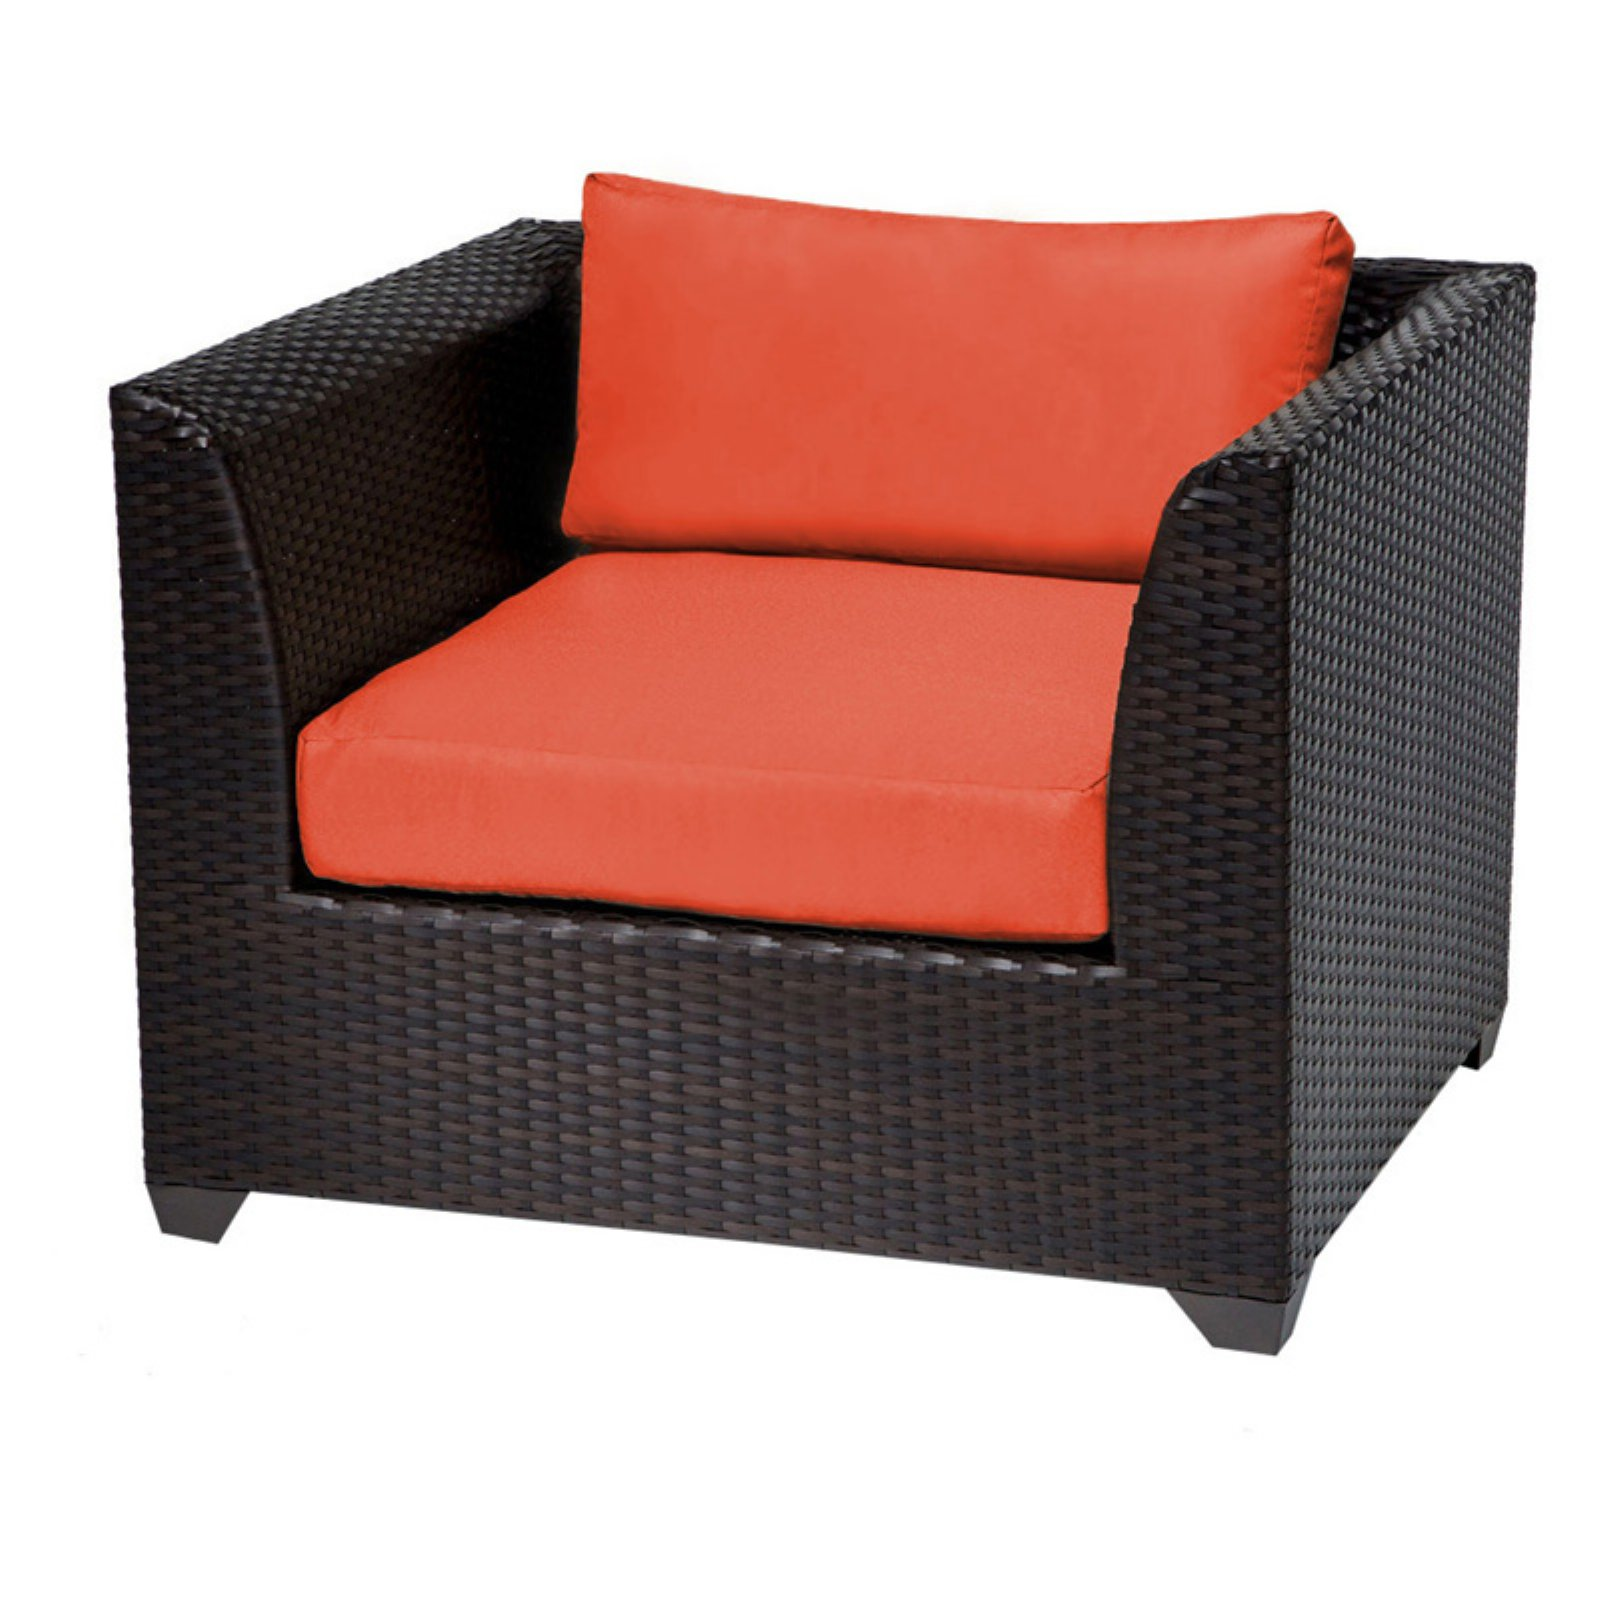 TK Classics Barbados Wicker Outdoor Club Chair - Set of 2 Cushion Covers